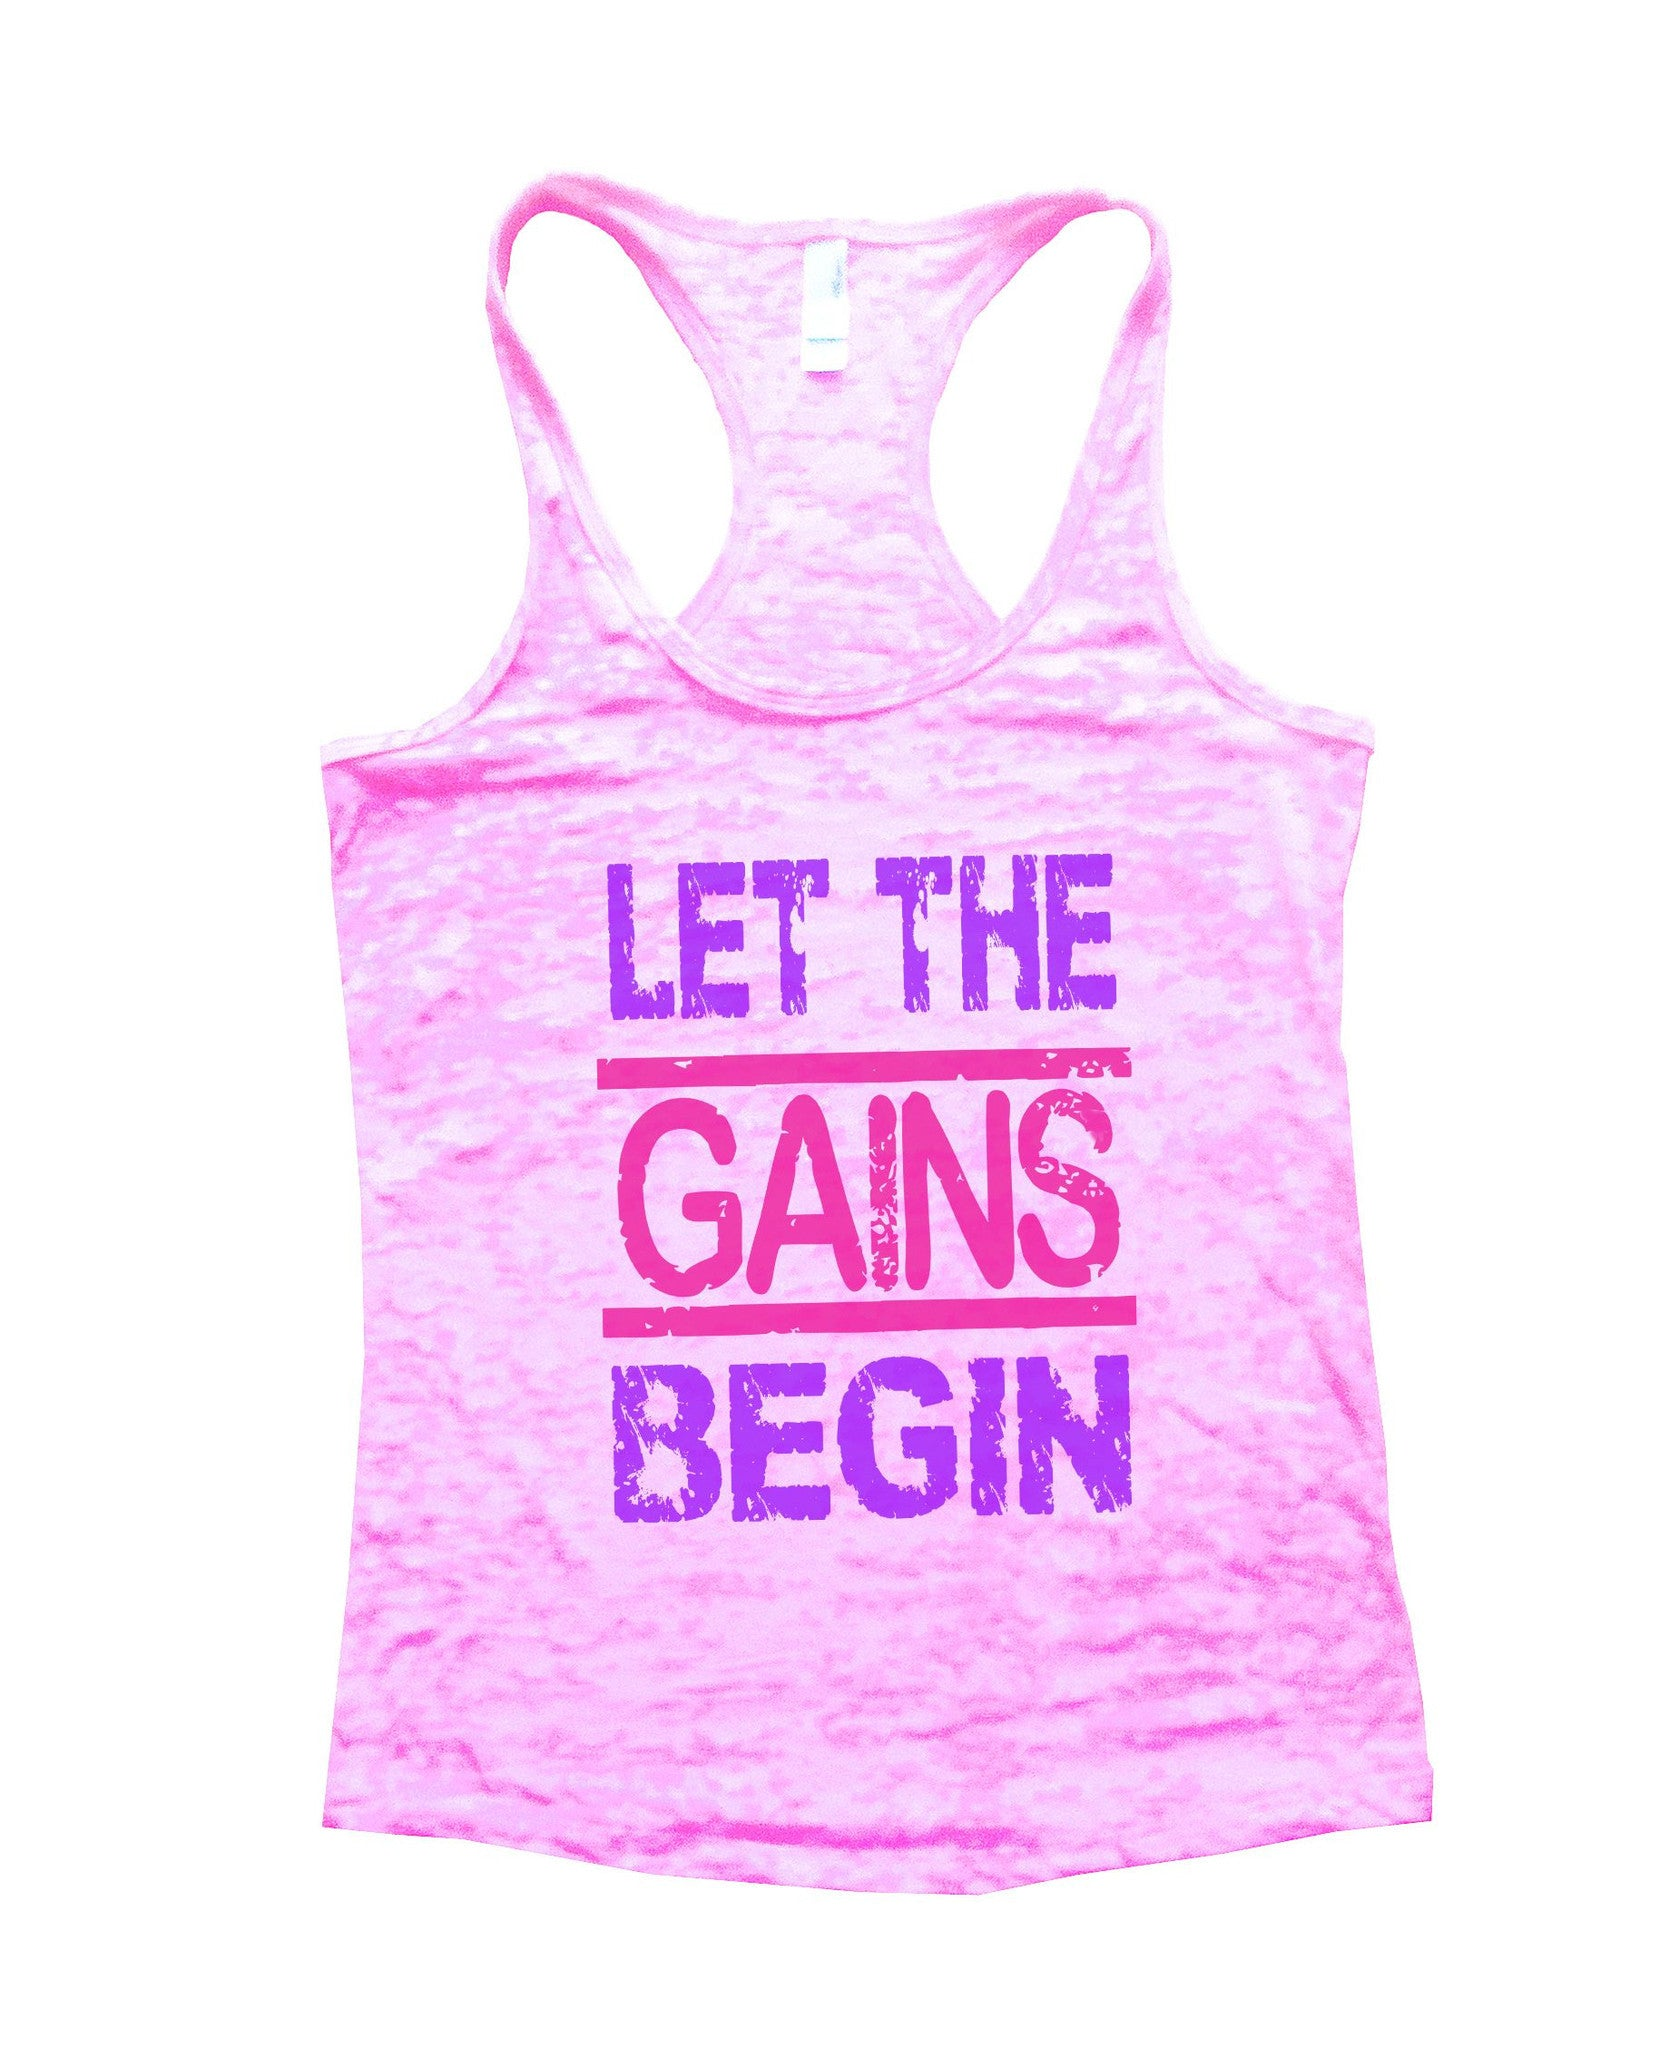 Let The Gains Begin Burnout Tank Top By BurnoutTankTops.com - 540 - Funny Shirts Tank Tops Burnouts and Triblends  - 2